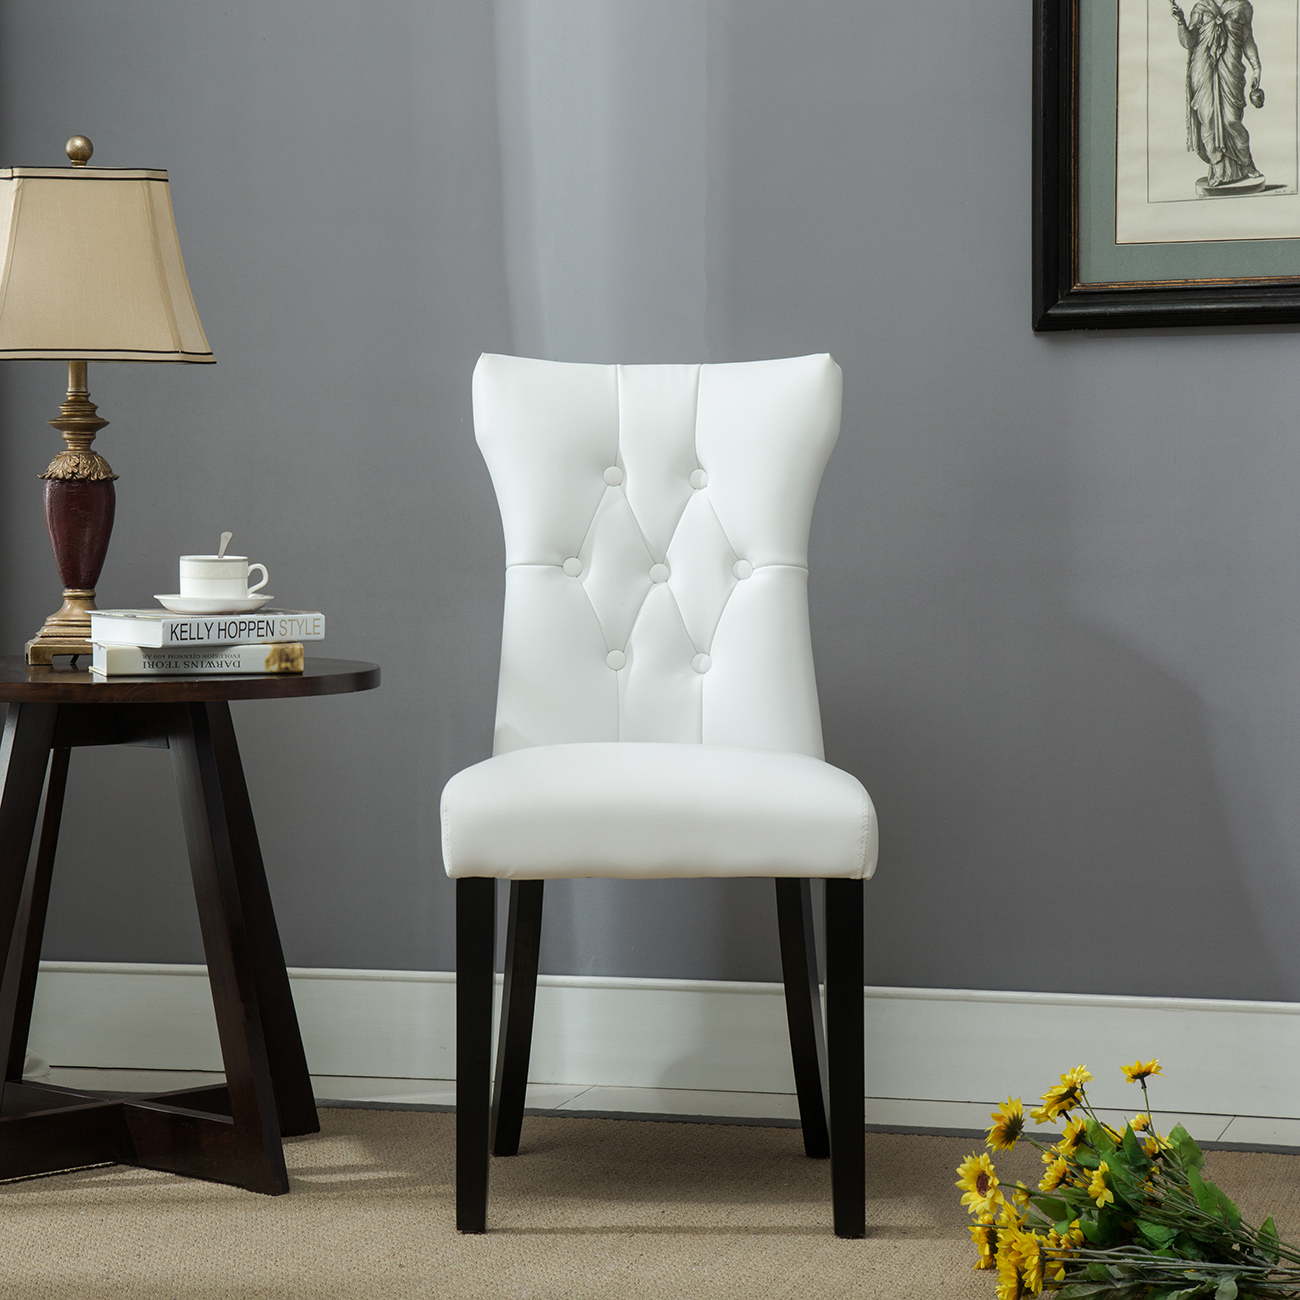 Set of (2) Modern Dining Chair Faux Leather Nailhead ...